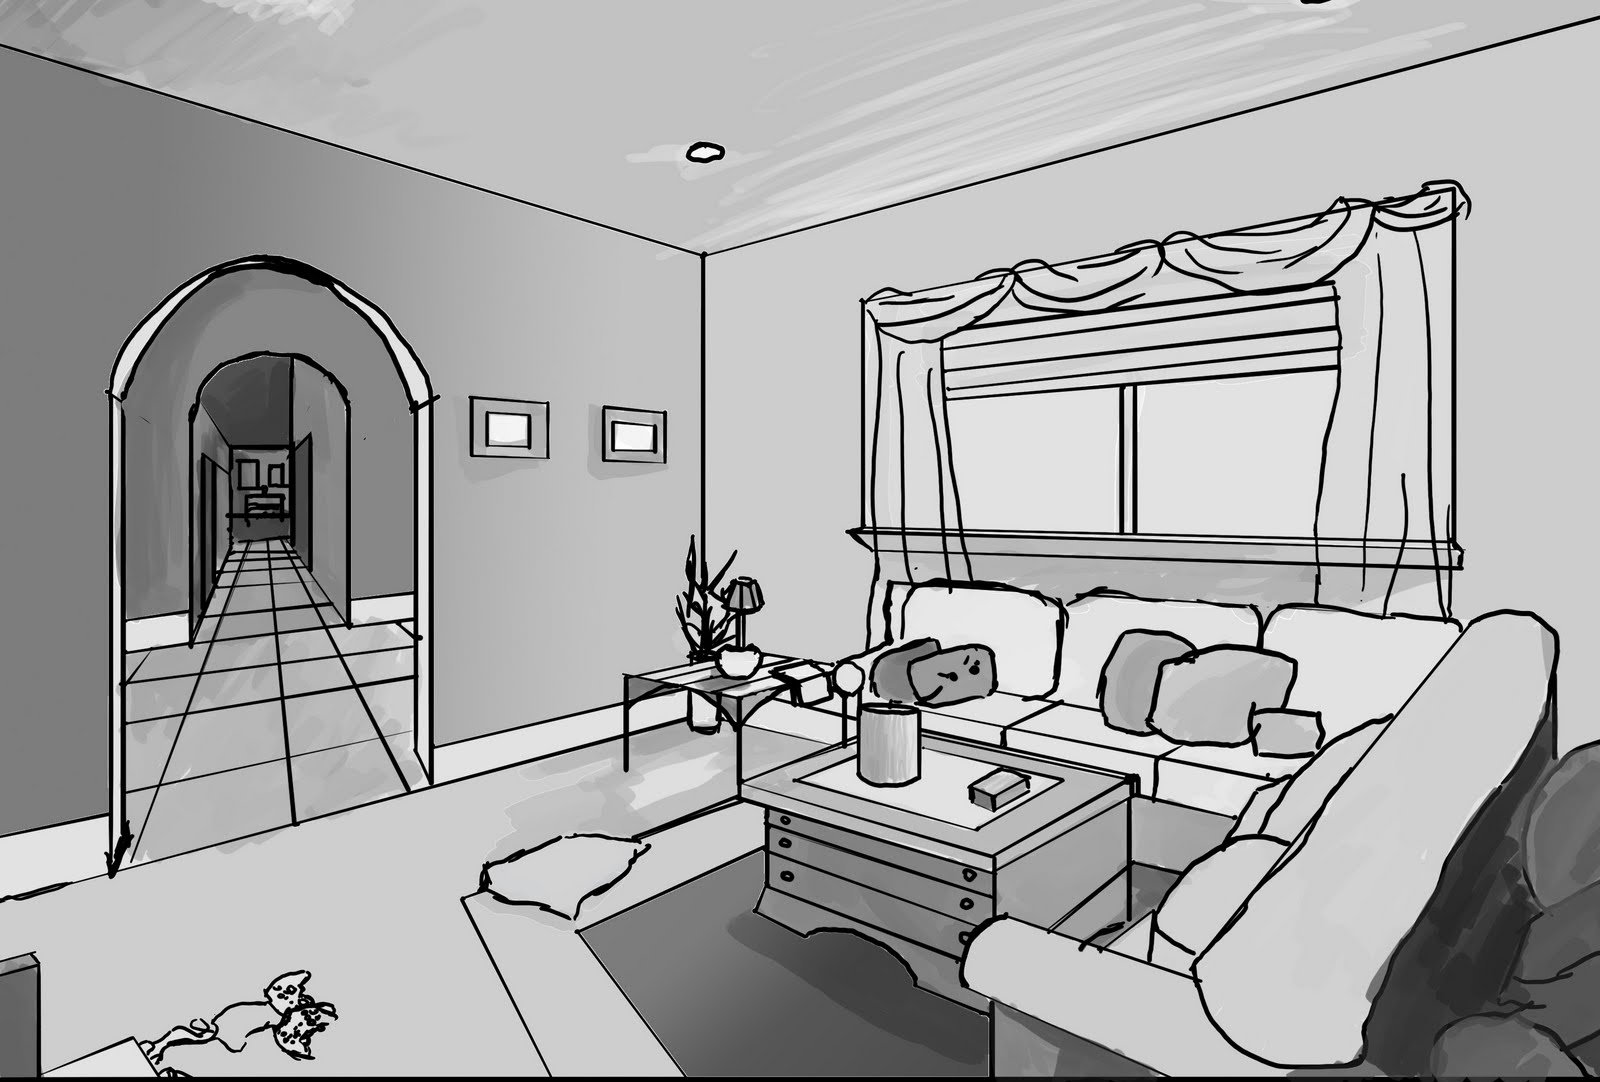 lcad perspective for game art living room. Black Bedroom Furniture Sets. Home Design Ideas